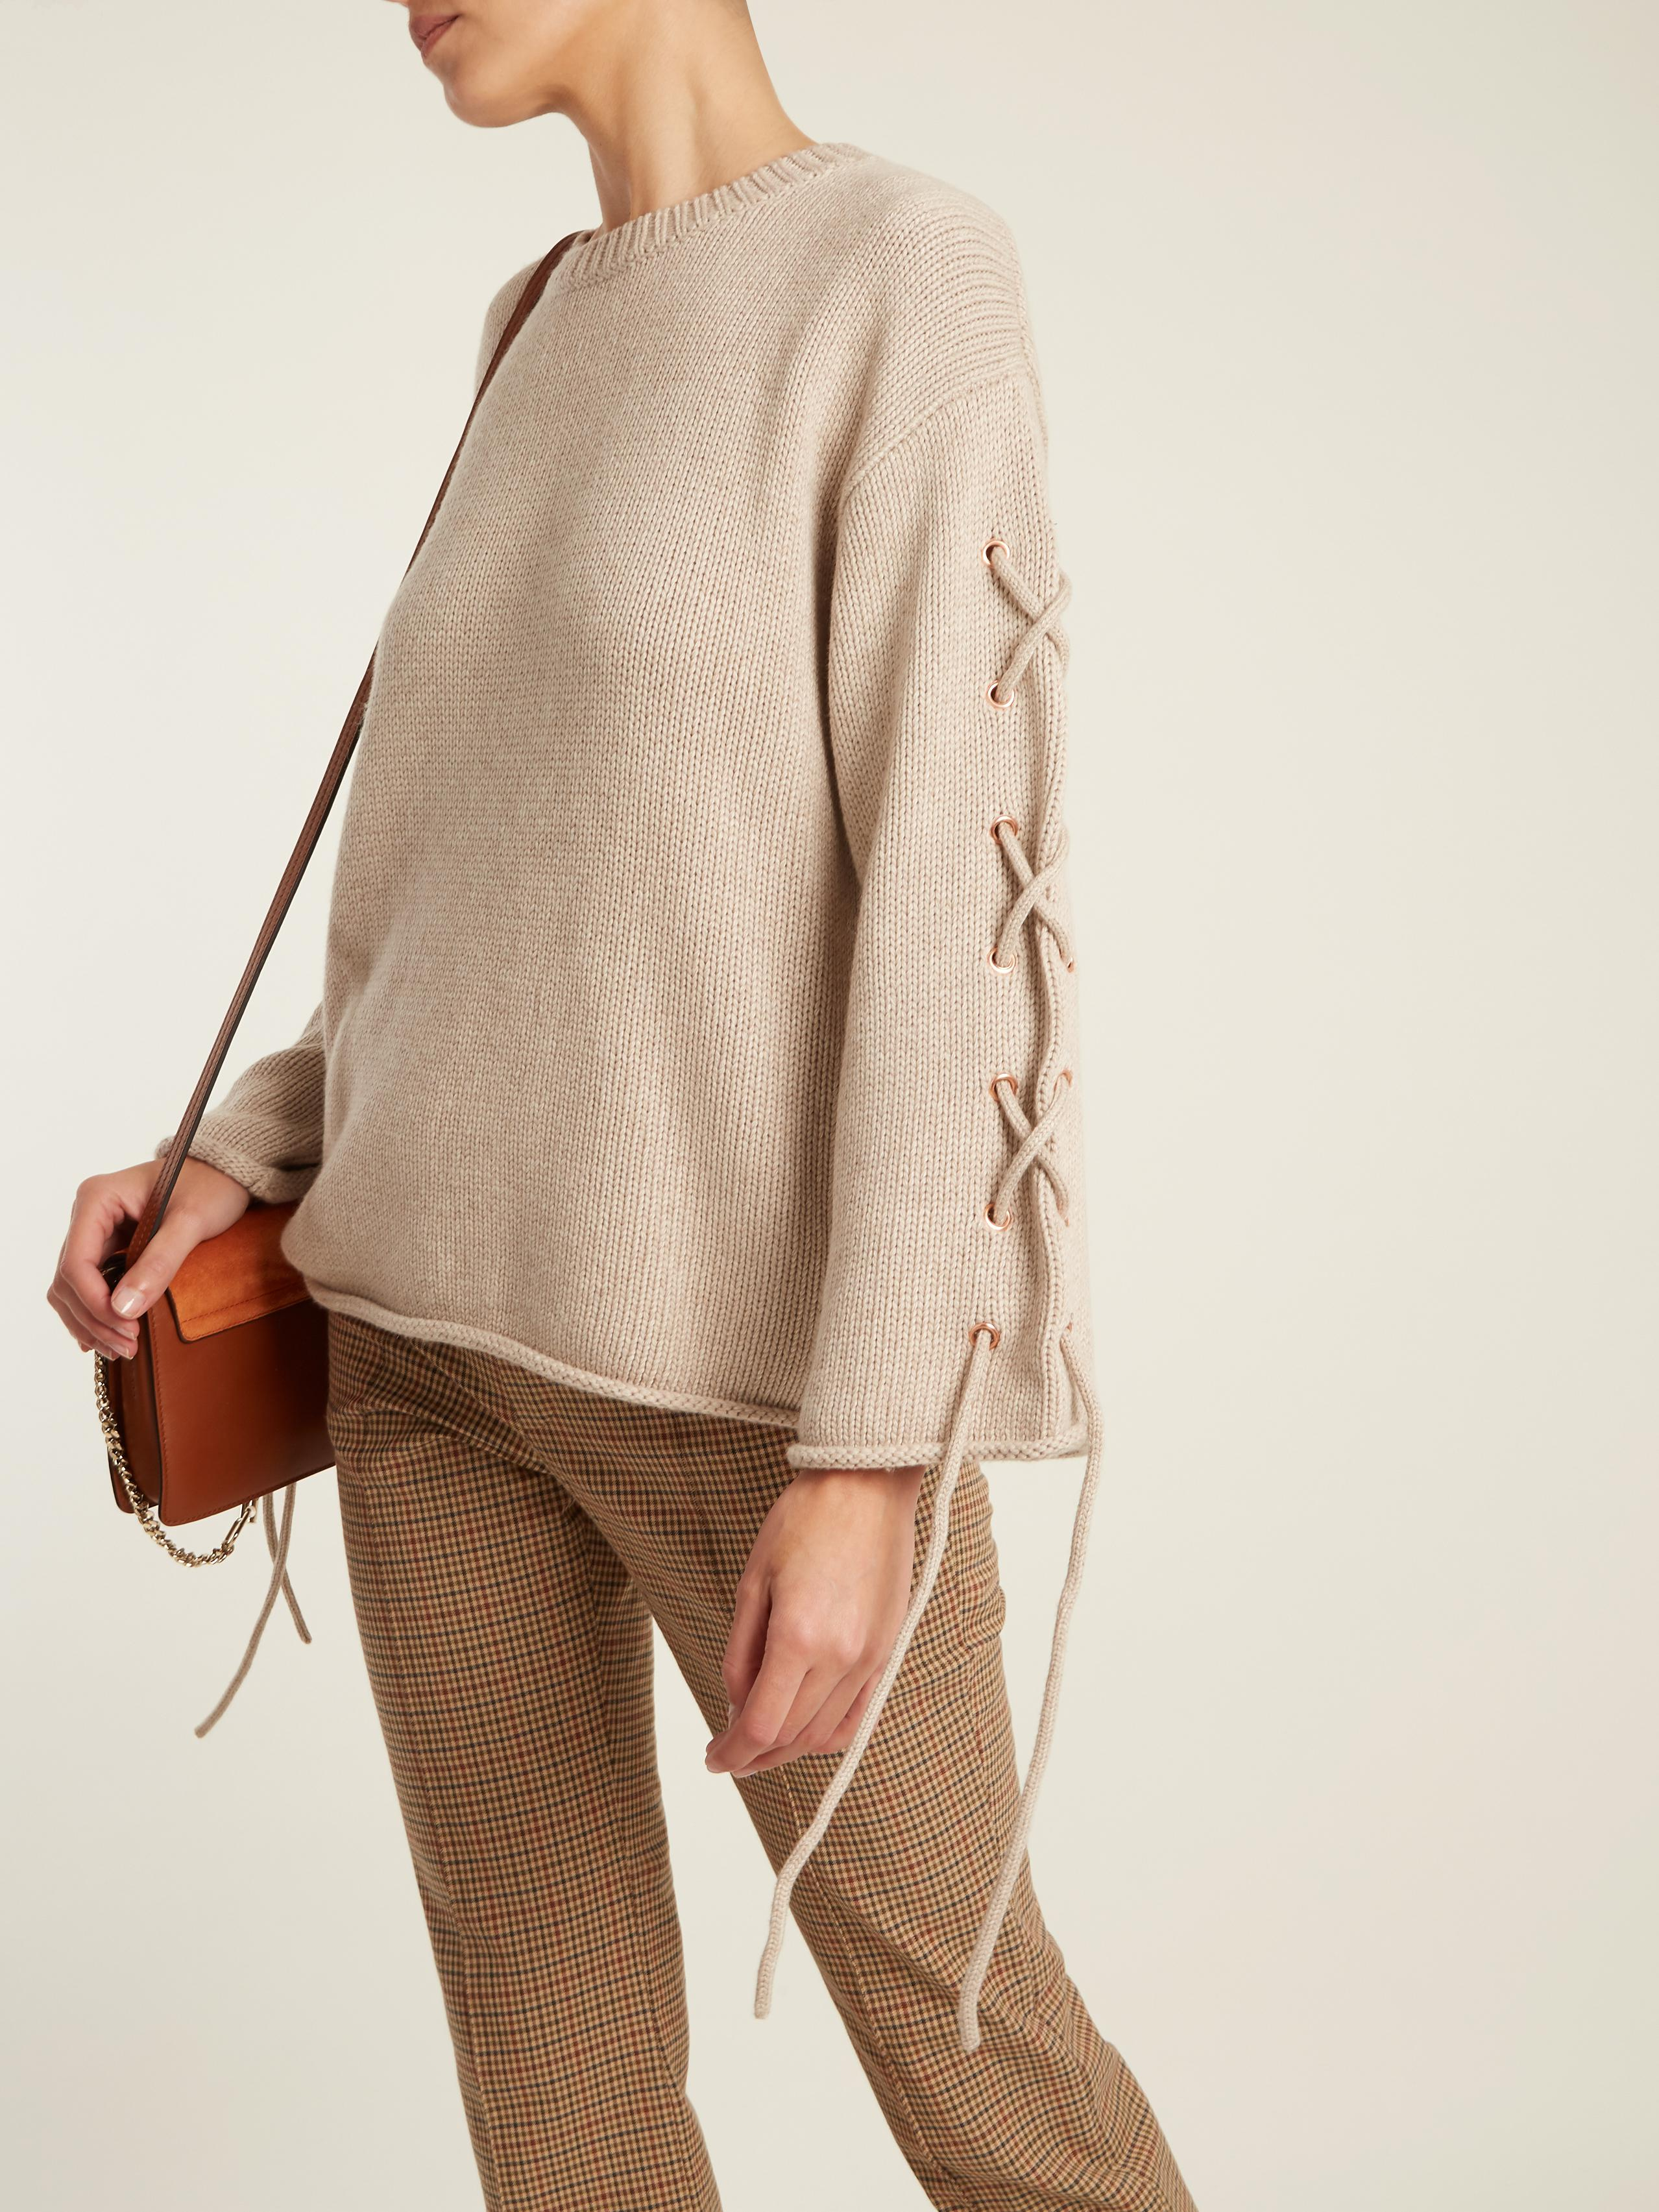 d1376f15 See By Chloé Natural Lace-up Rolled-edge Knit Sweater